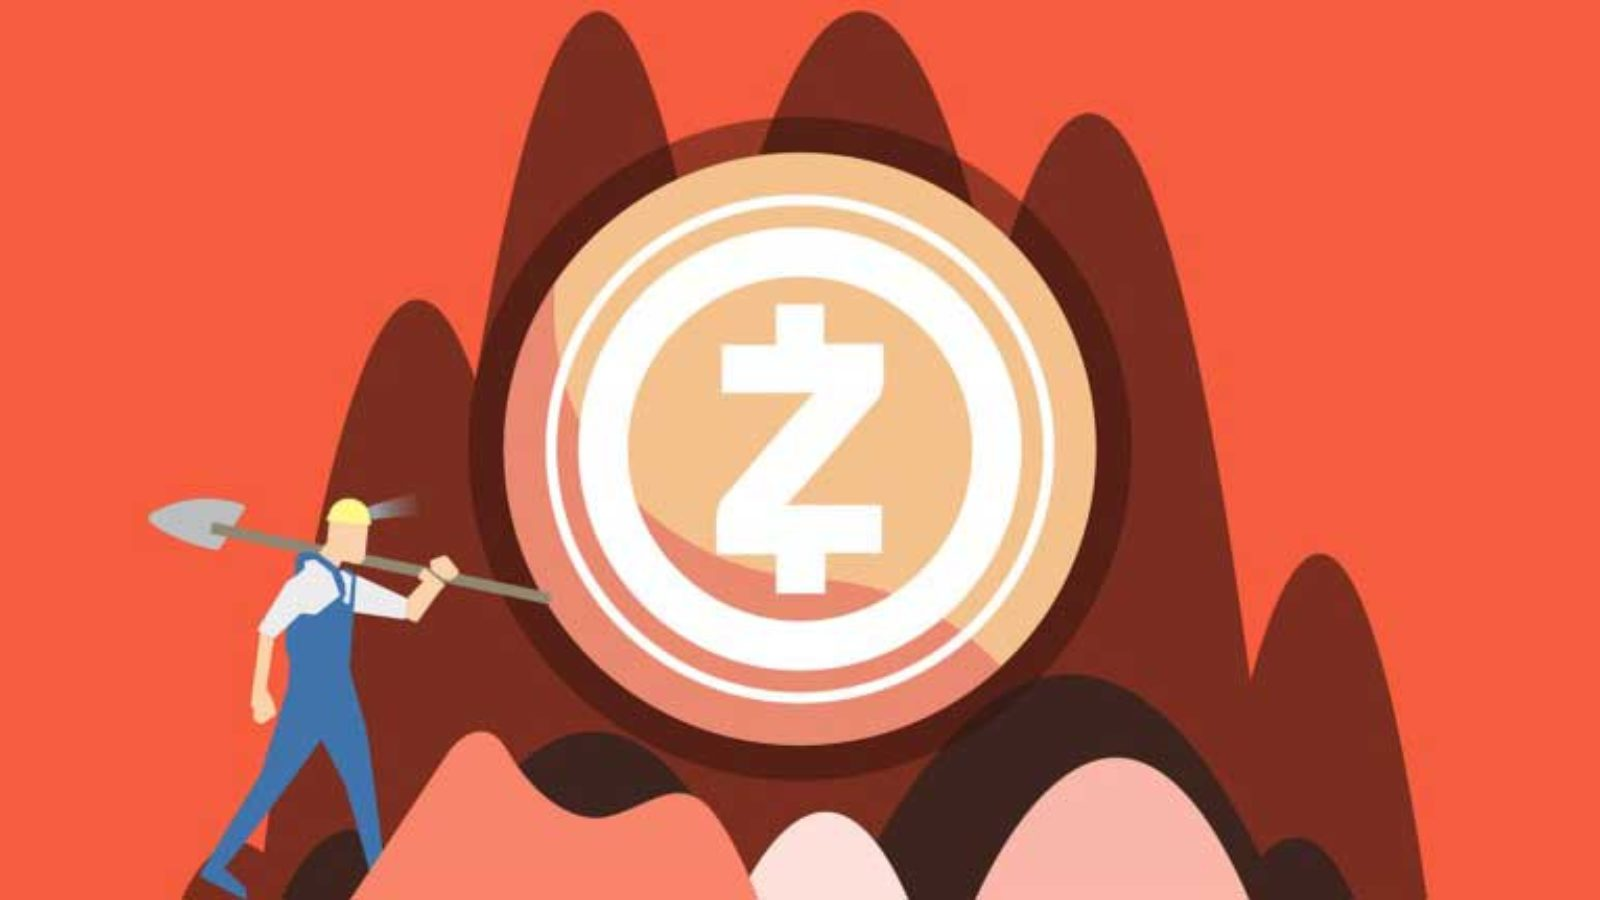 Vector image of man digging for bitcoin